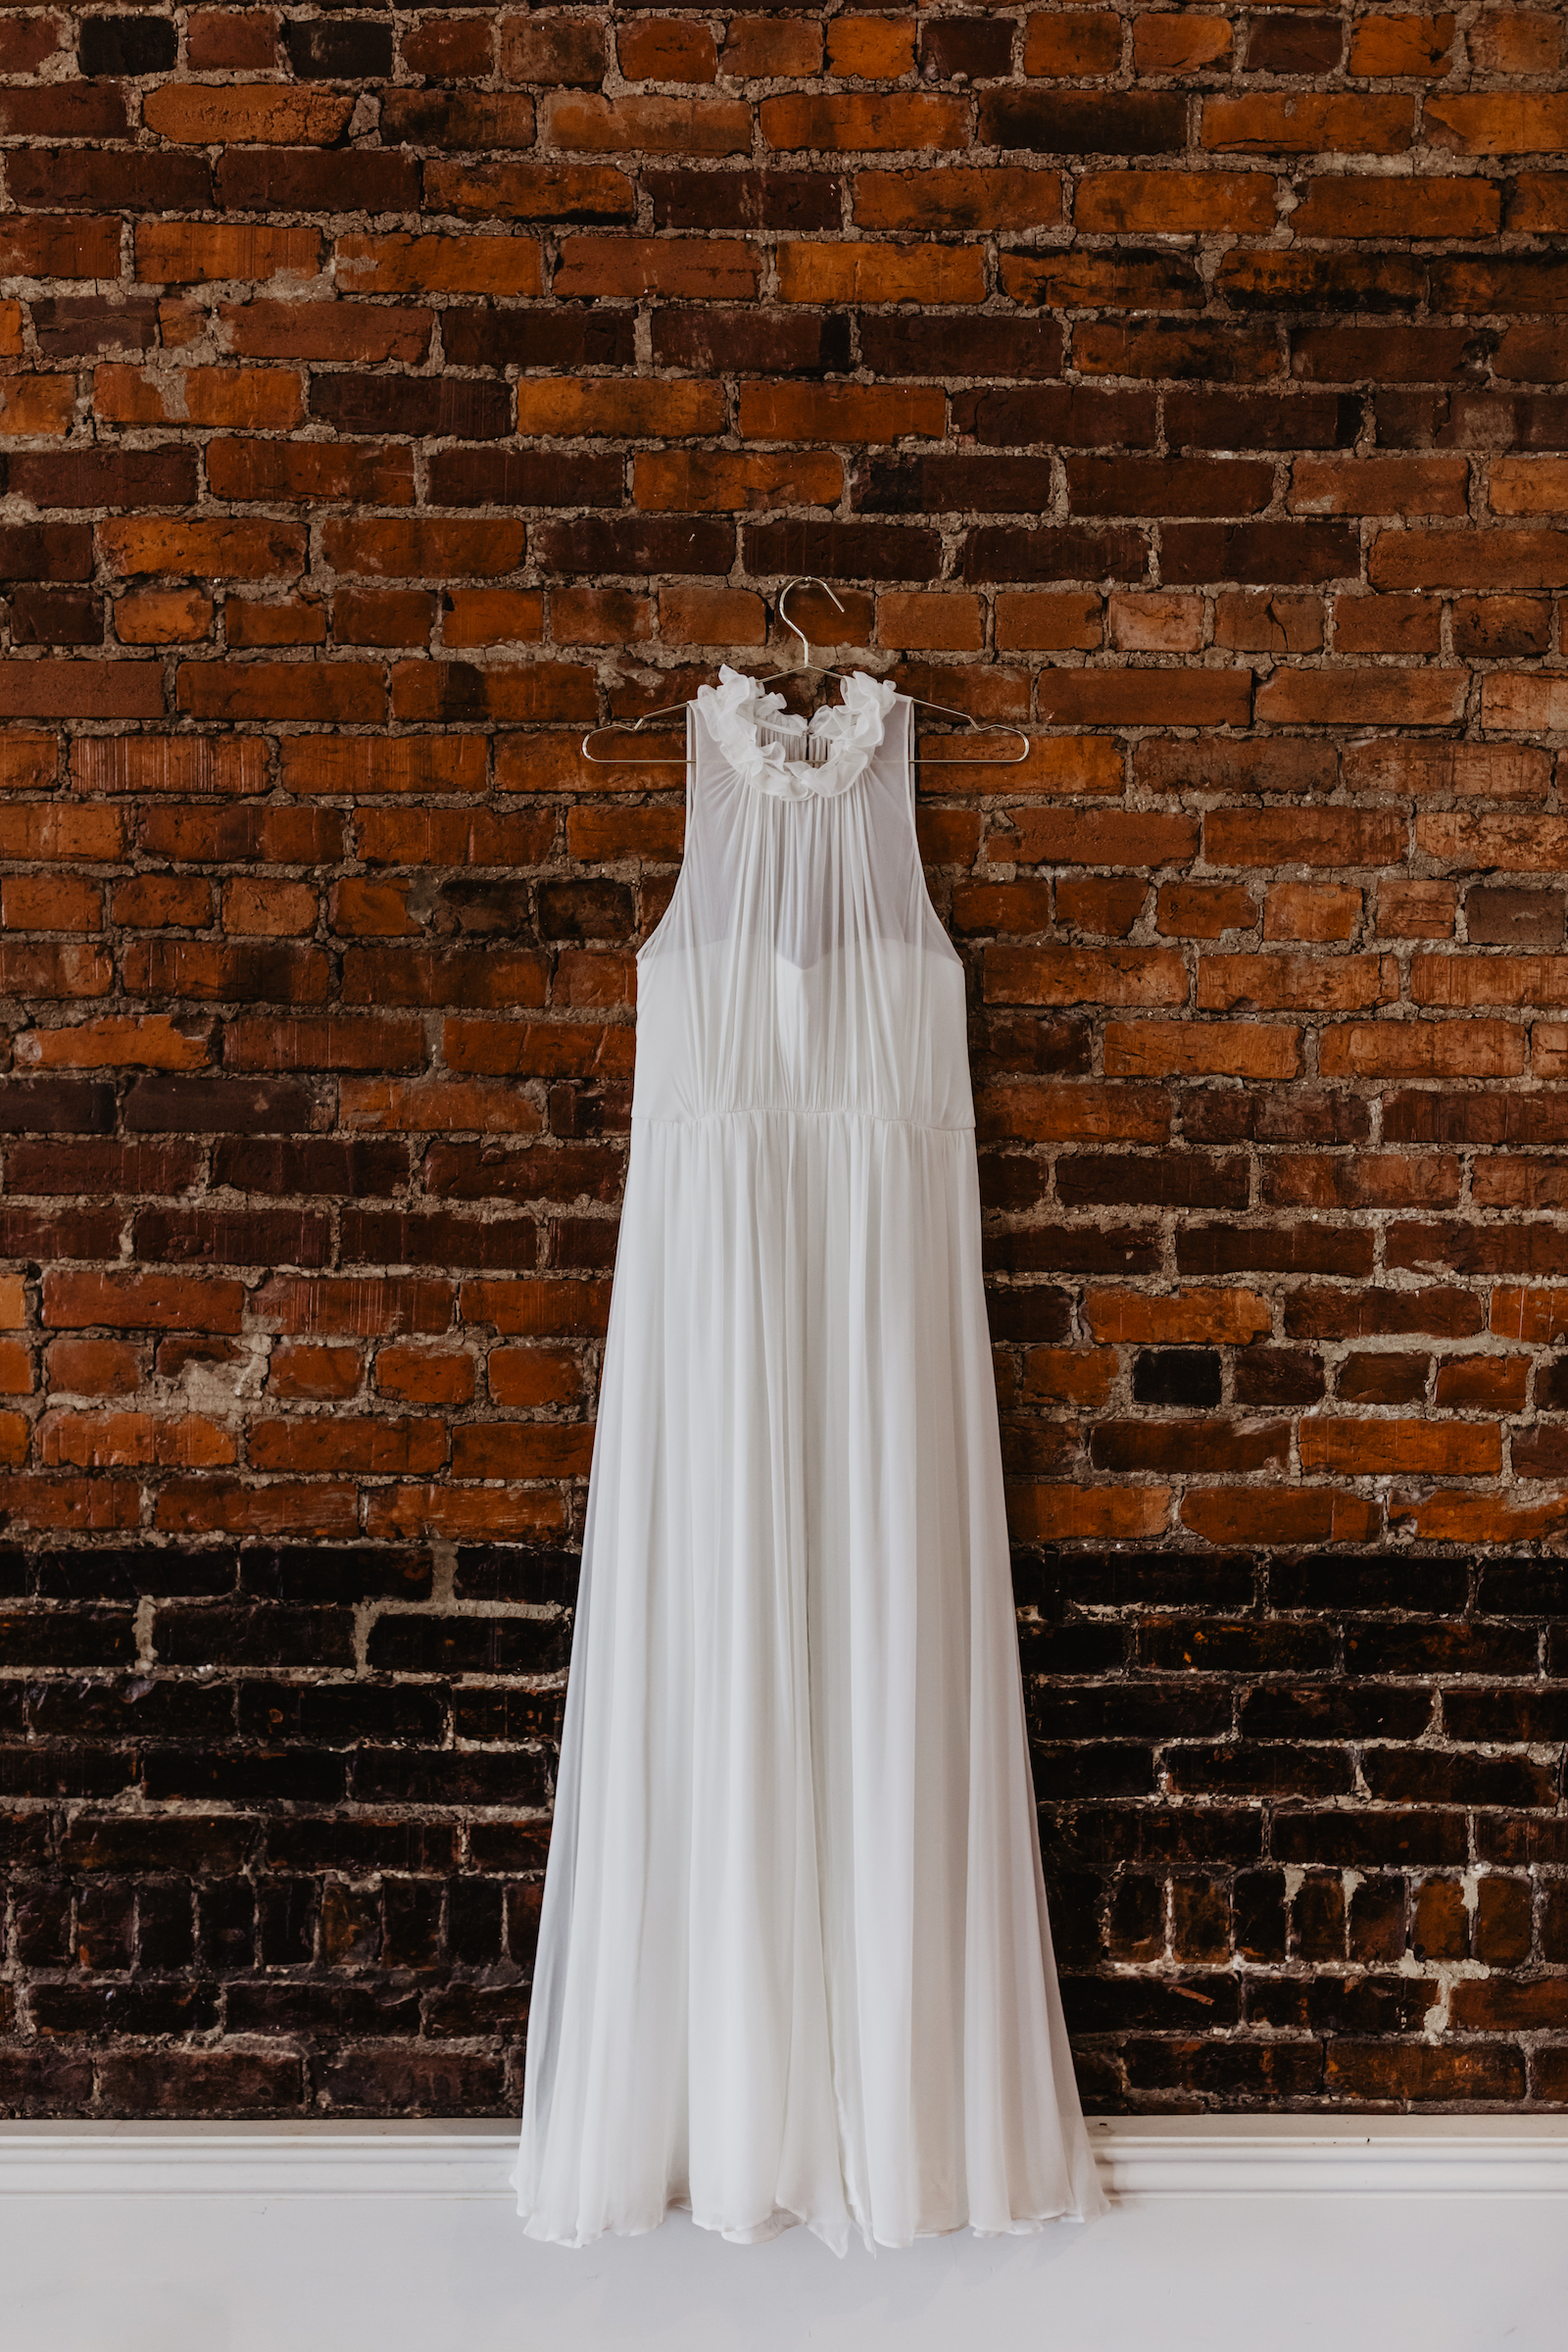 Elegant wedding dress for wedding styled shoot featured on Nashville Bride Guide